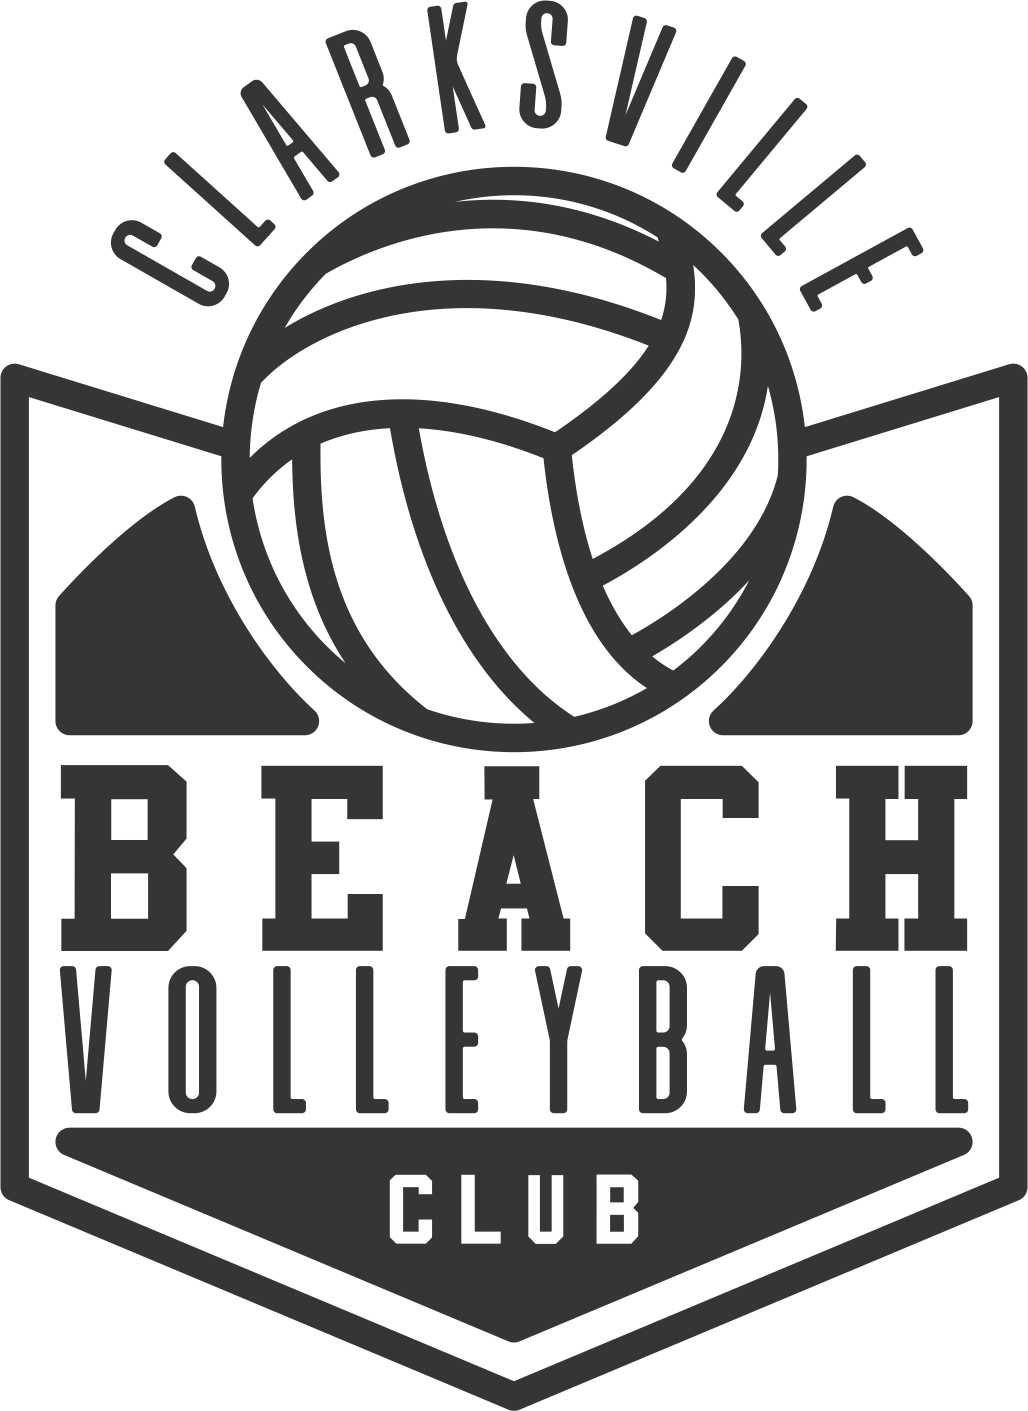 Clarksville Volleyball Club